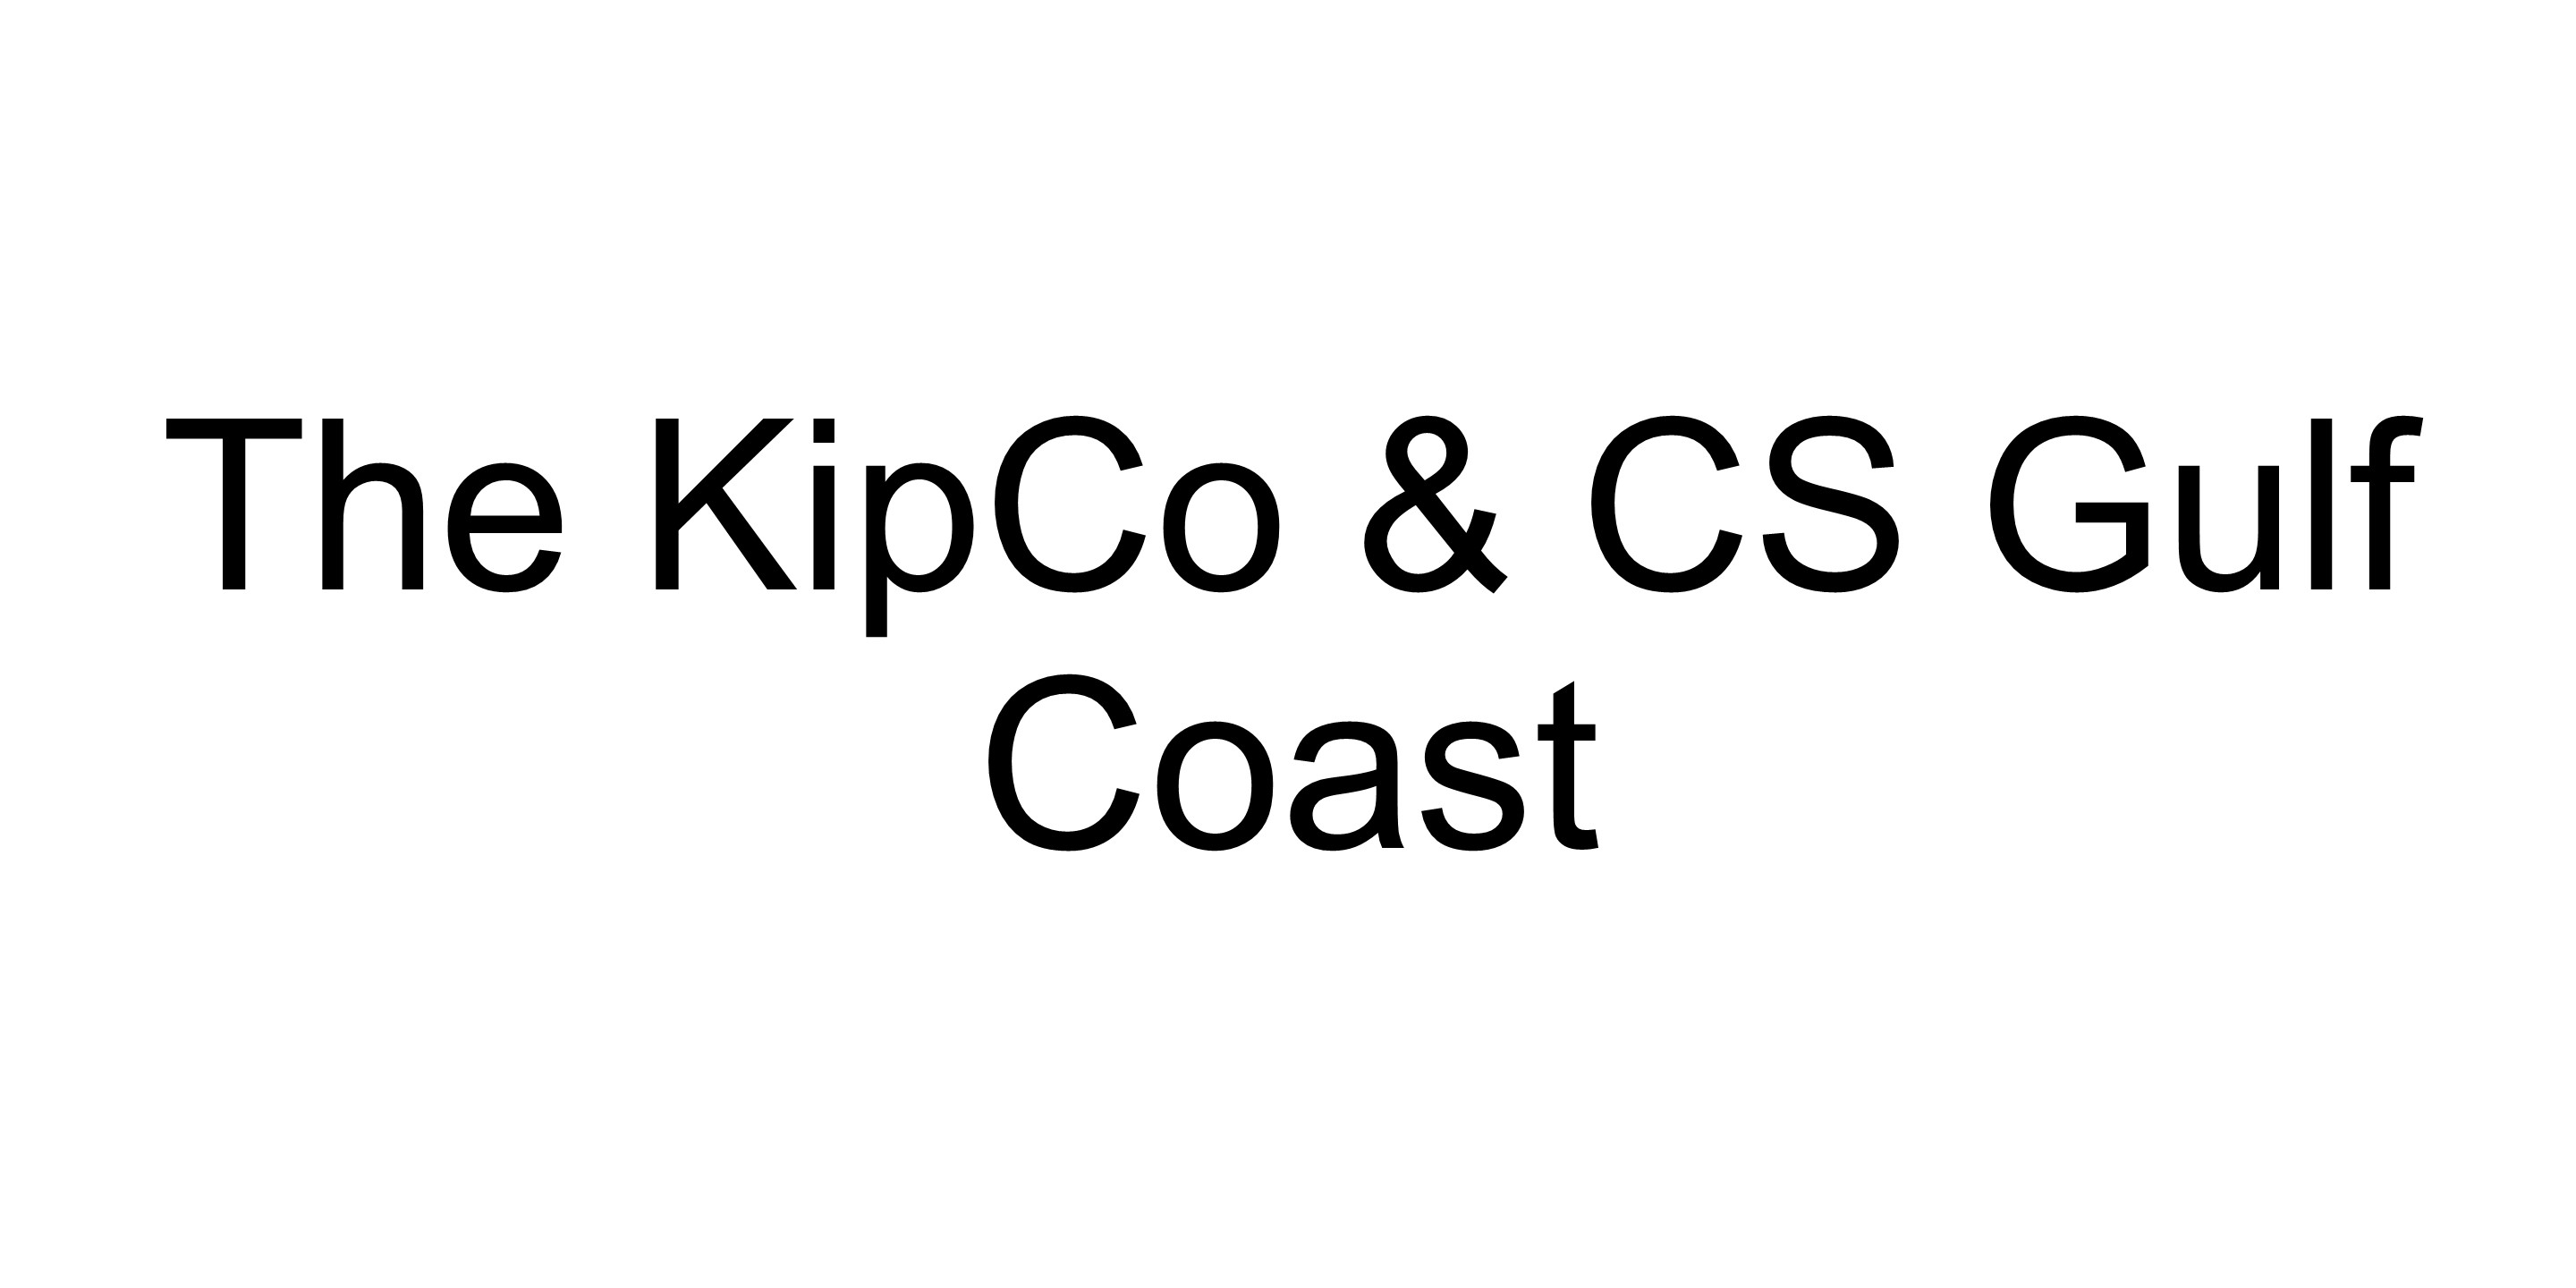 The KipCo & CS Gulf Coast logo